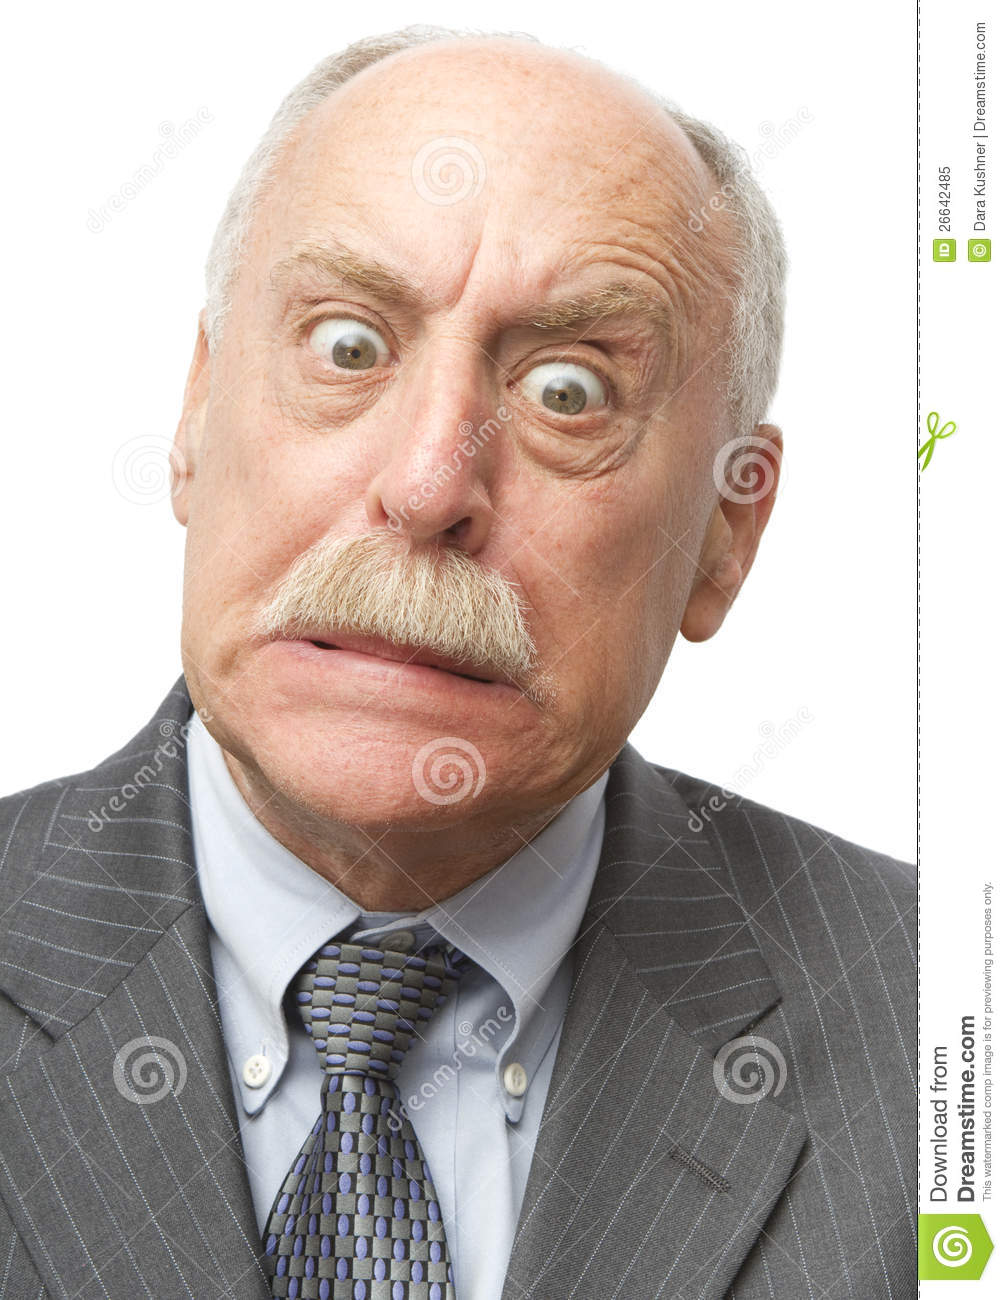 scary man stock image  image of background  people  anger